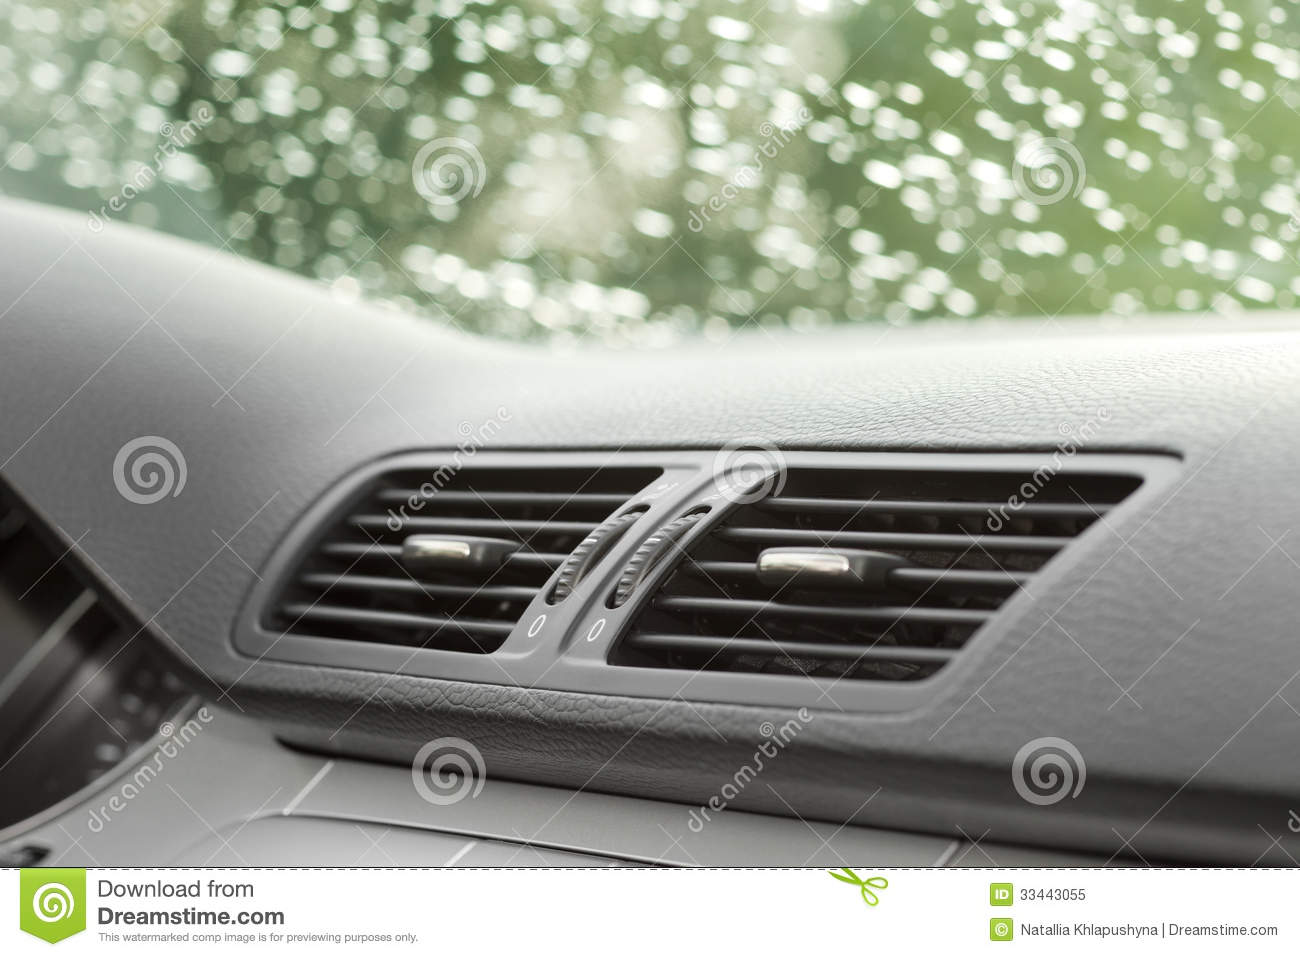 Air conditioning and car ventilation system. #82A328